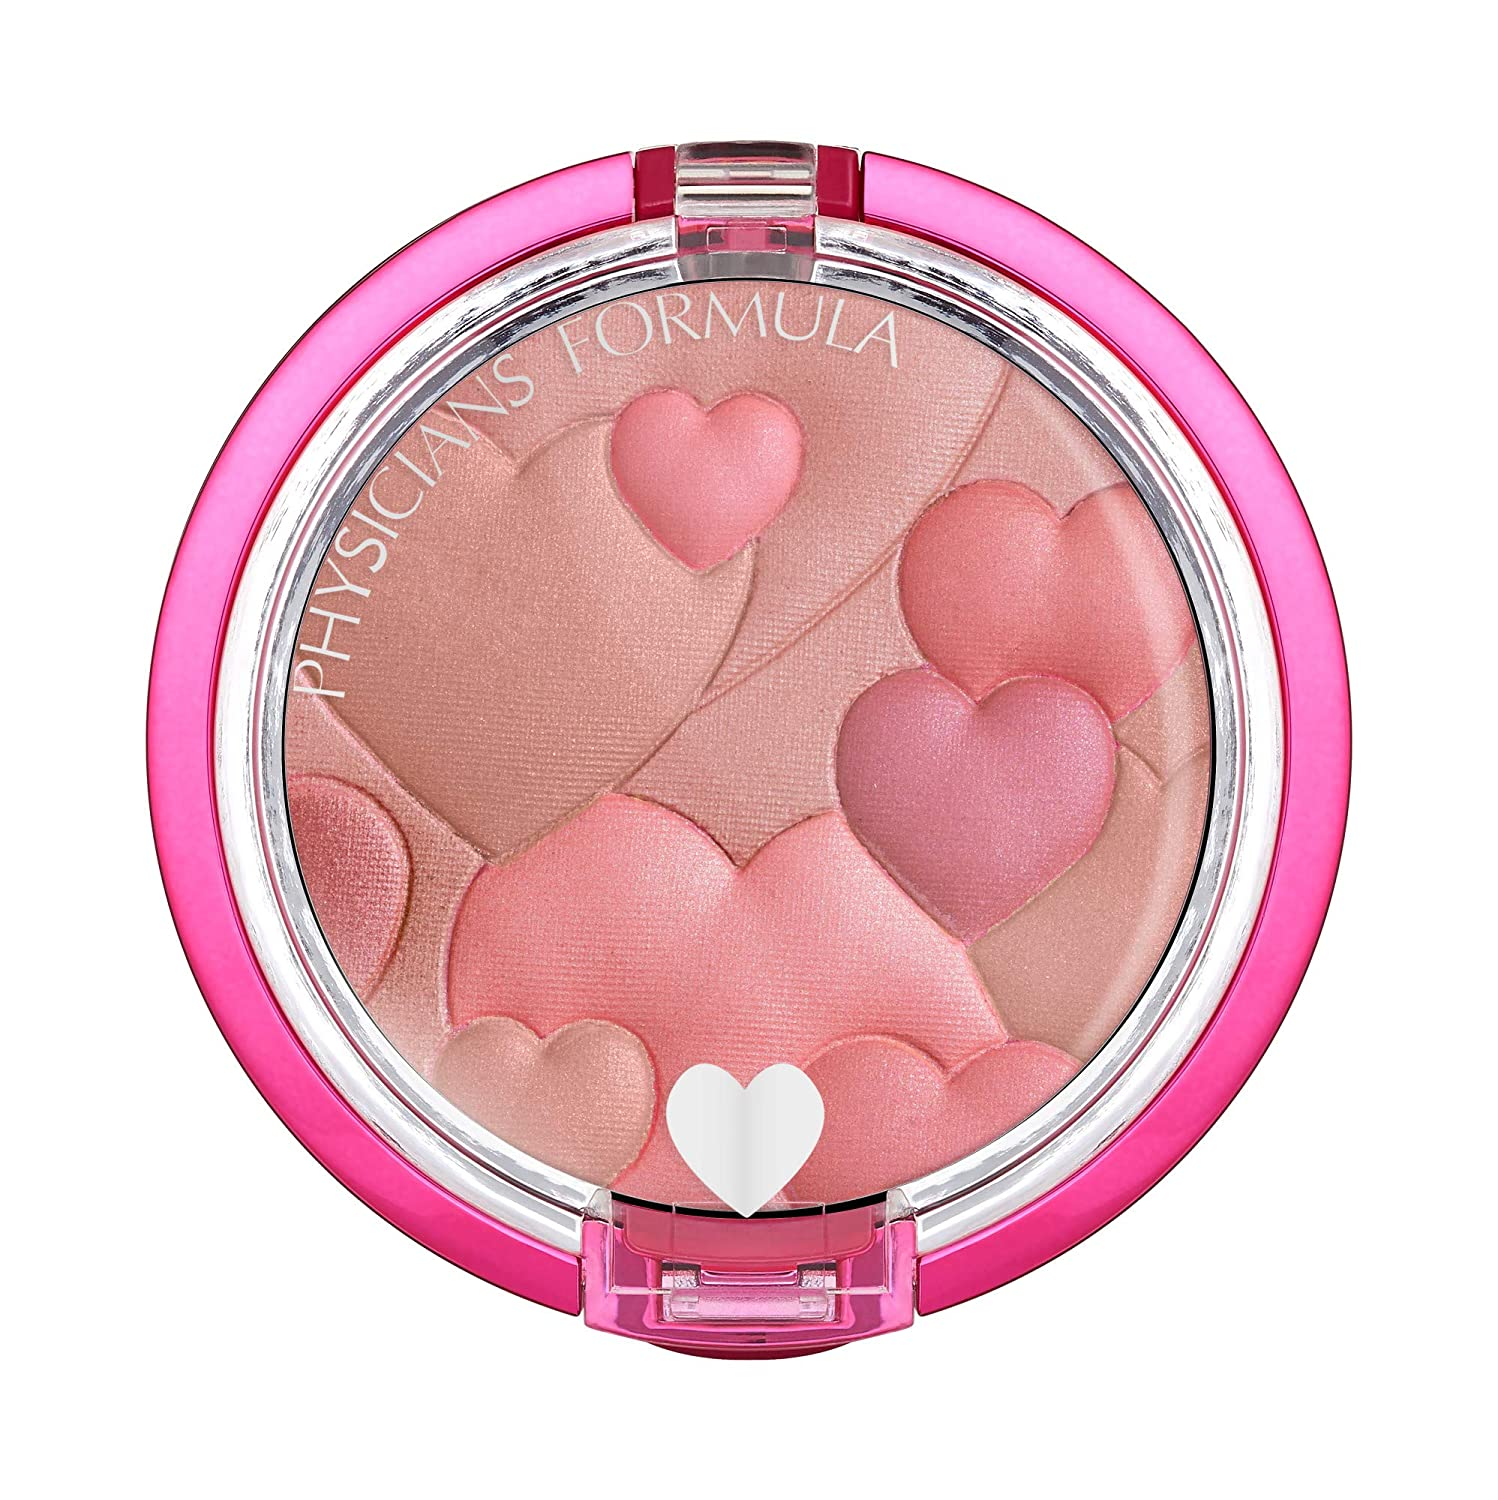 Physicians Formula Happy Booster Glow and Mood Boosting Blush, Natural, 0.24 oz. : Face Blushes : Beauty & Personal Care